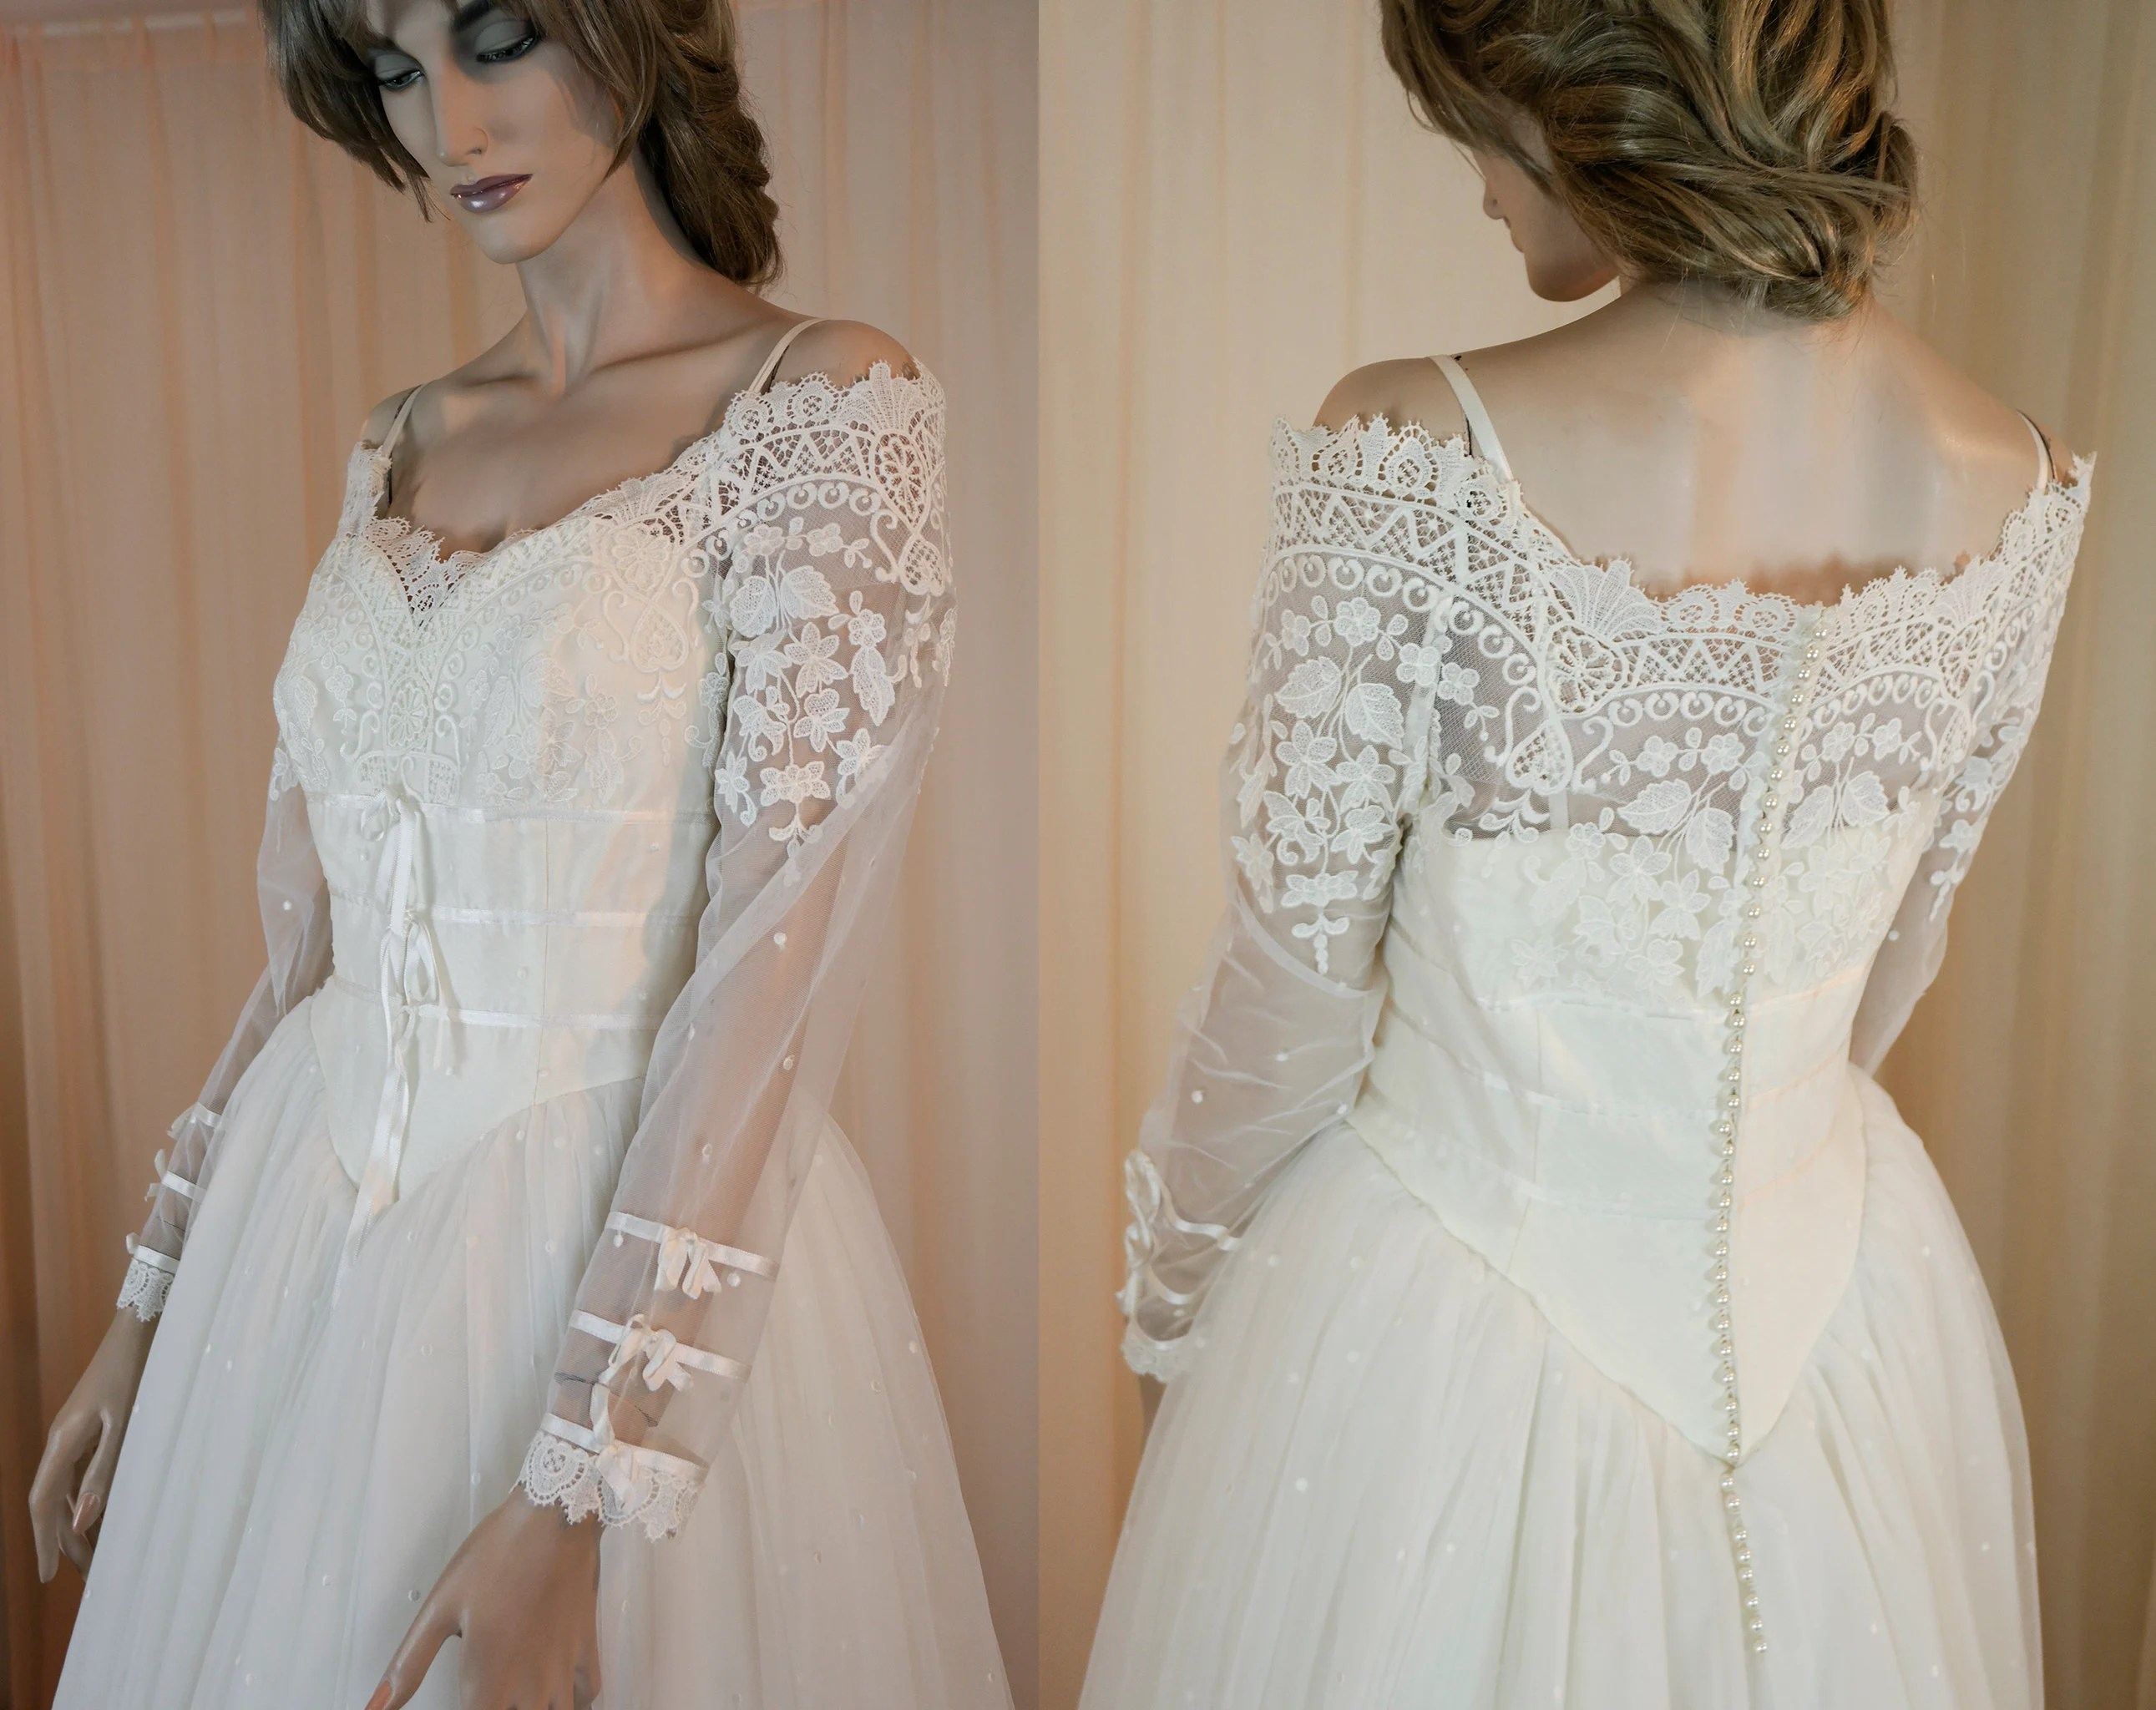 Romantic Wedding Dress 80's Ball Gown Cinderella Style